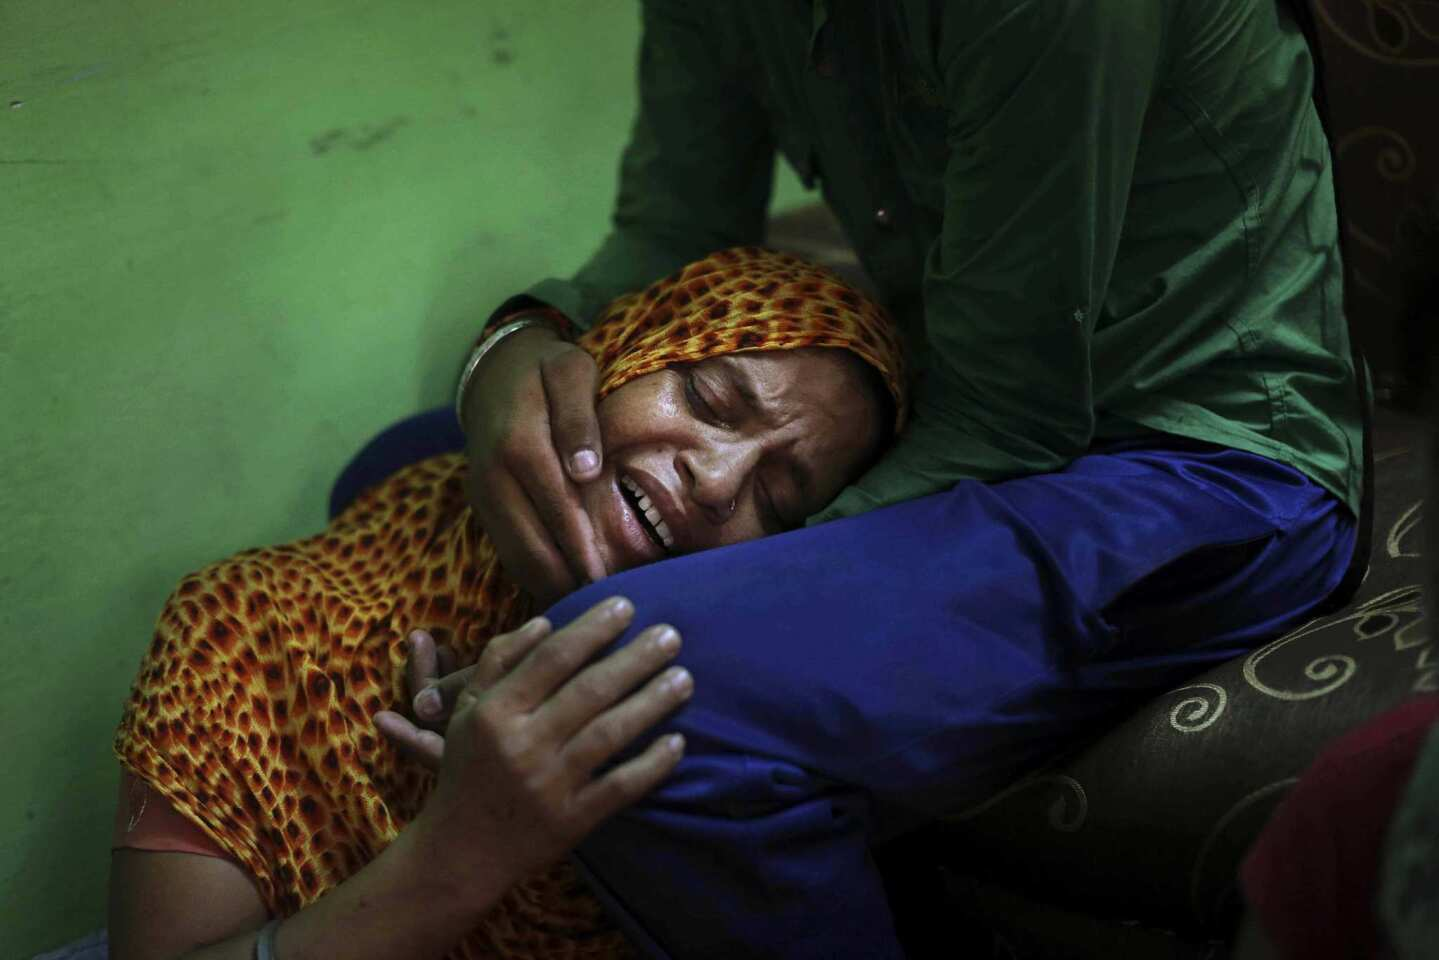 Mourning in India